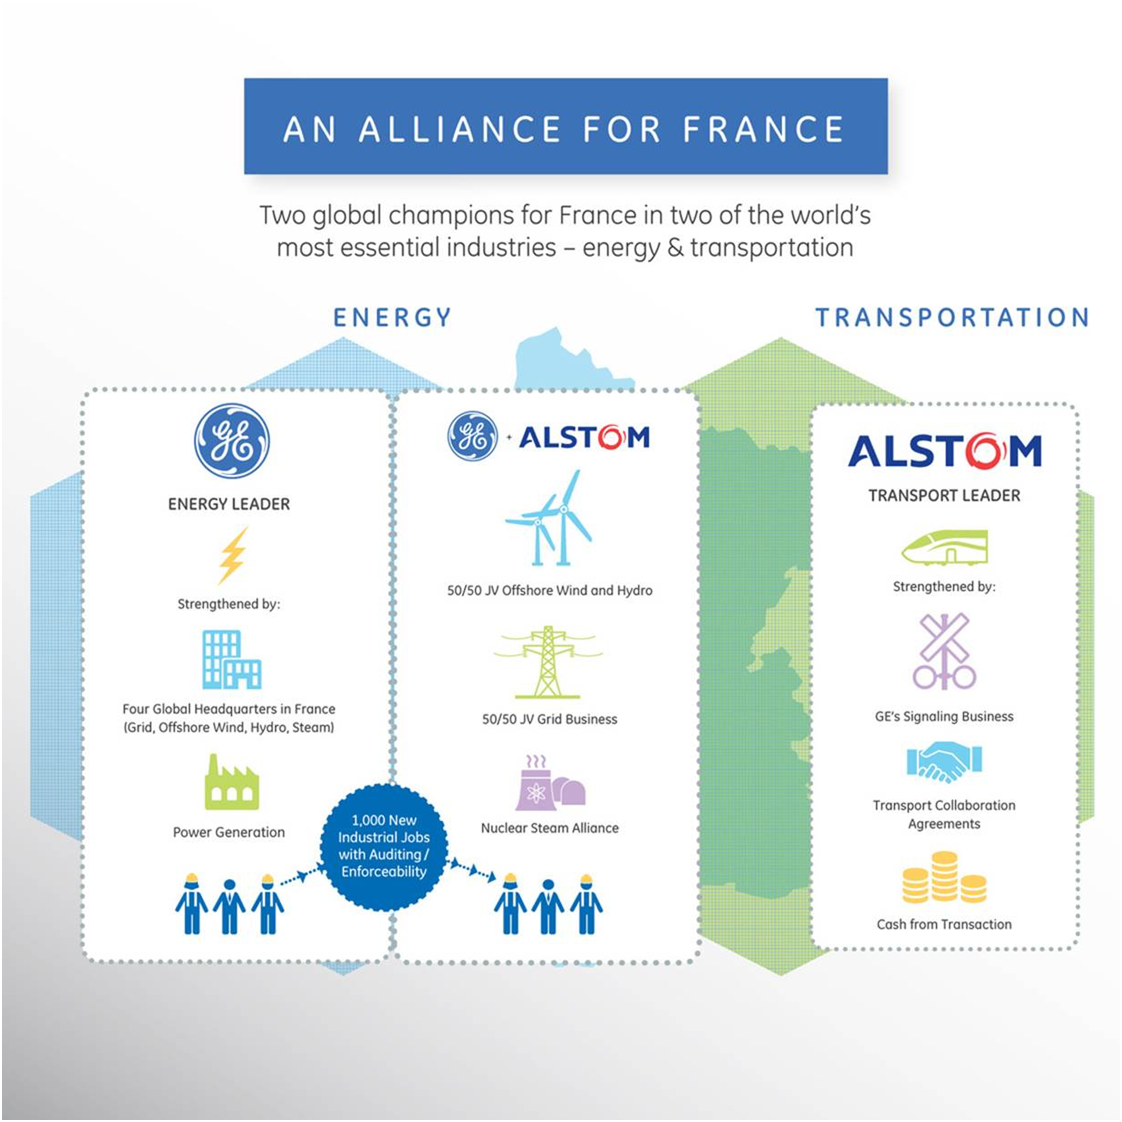 What To Expect Next Potential Synergies Of The Alstom